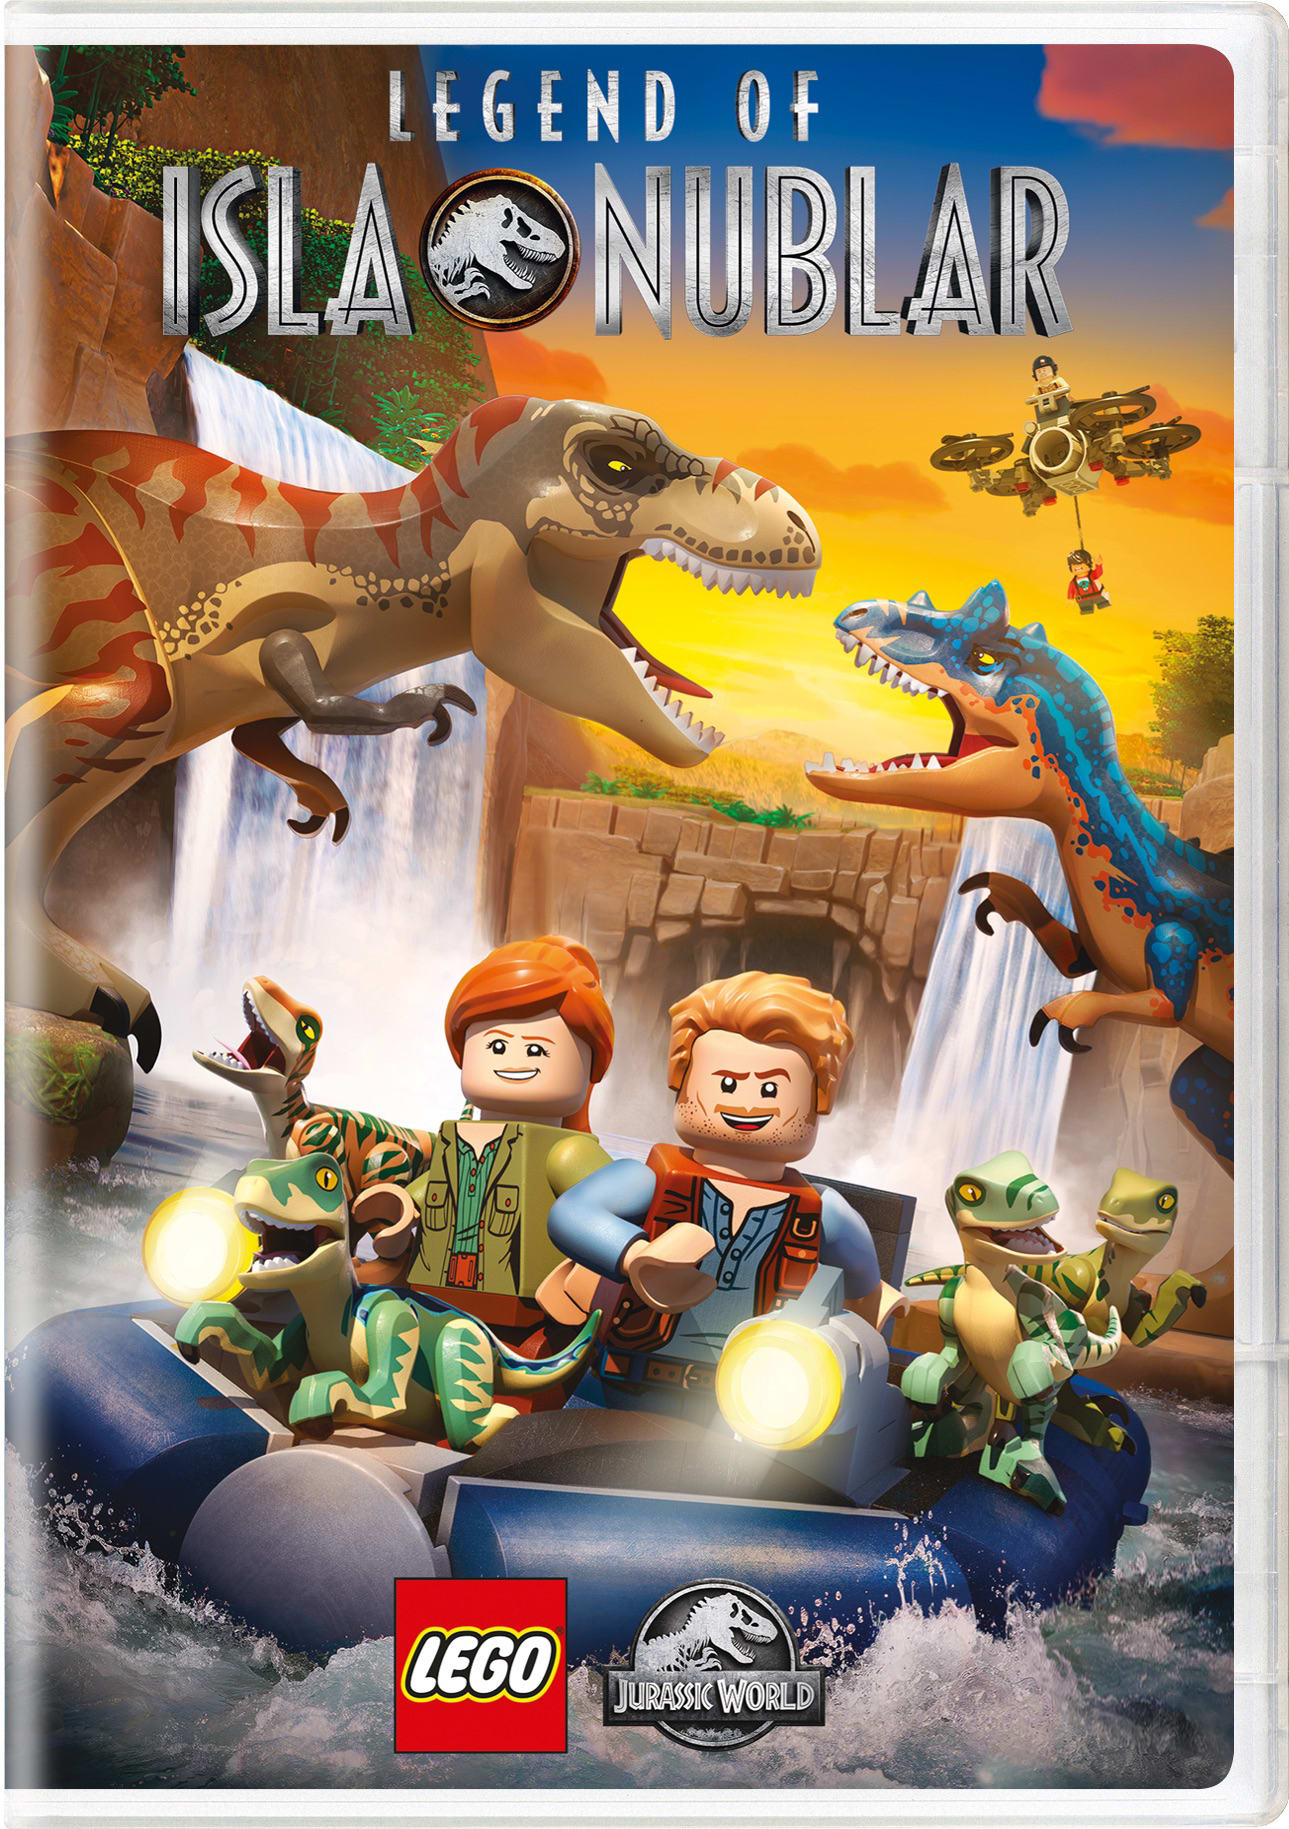 LEGO Jurassic World: Legend of Isla Nublar - Season 1 [DVD]